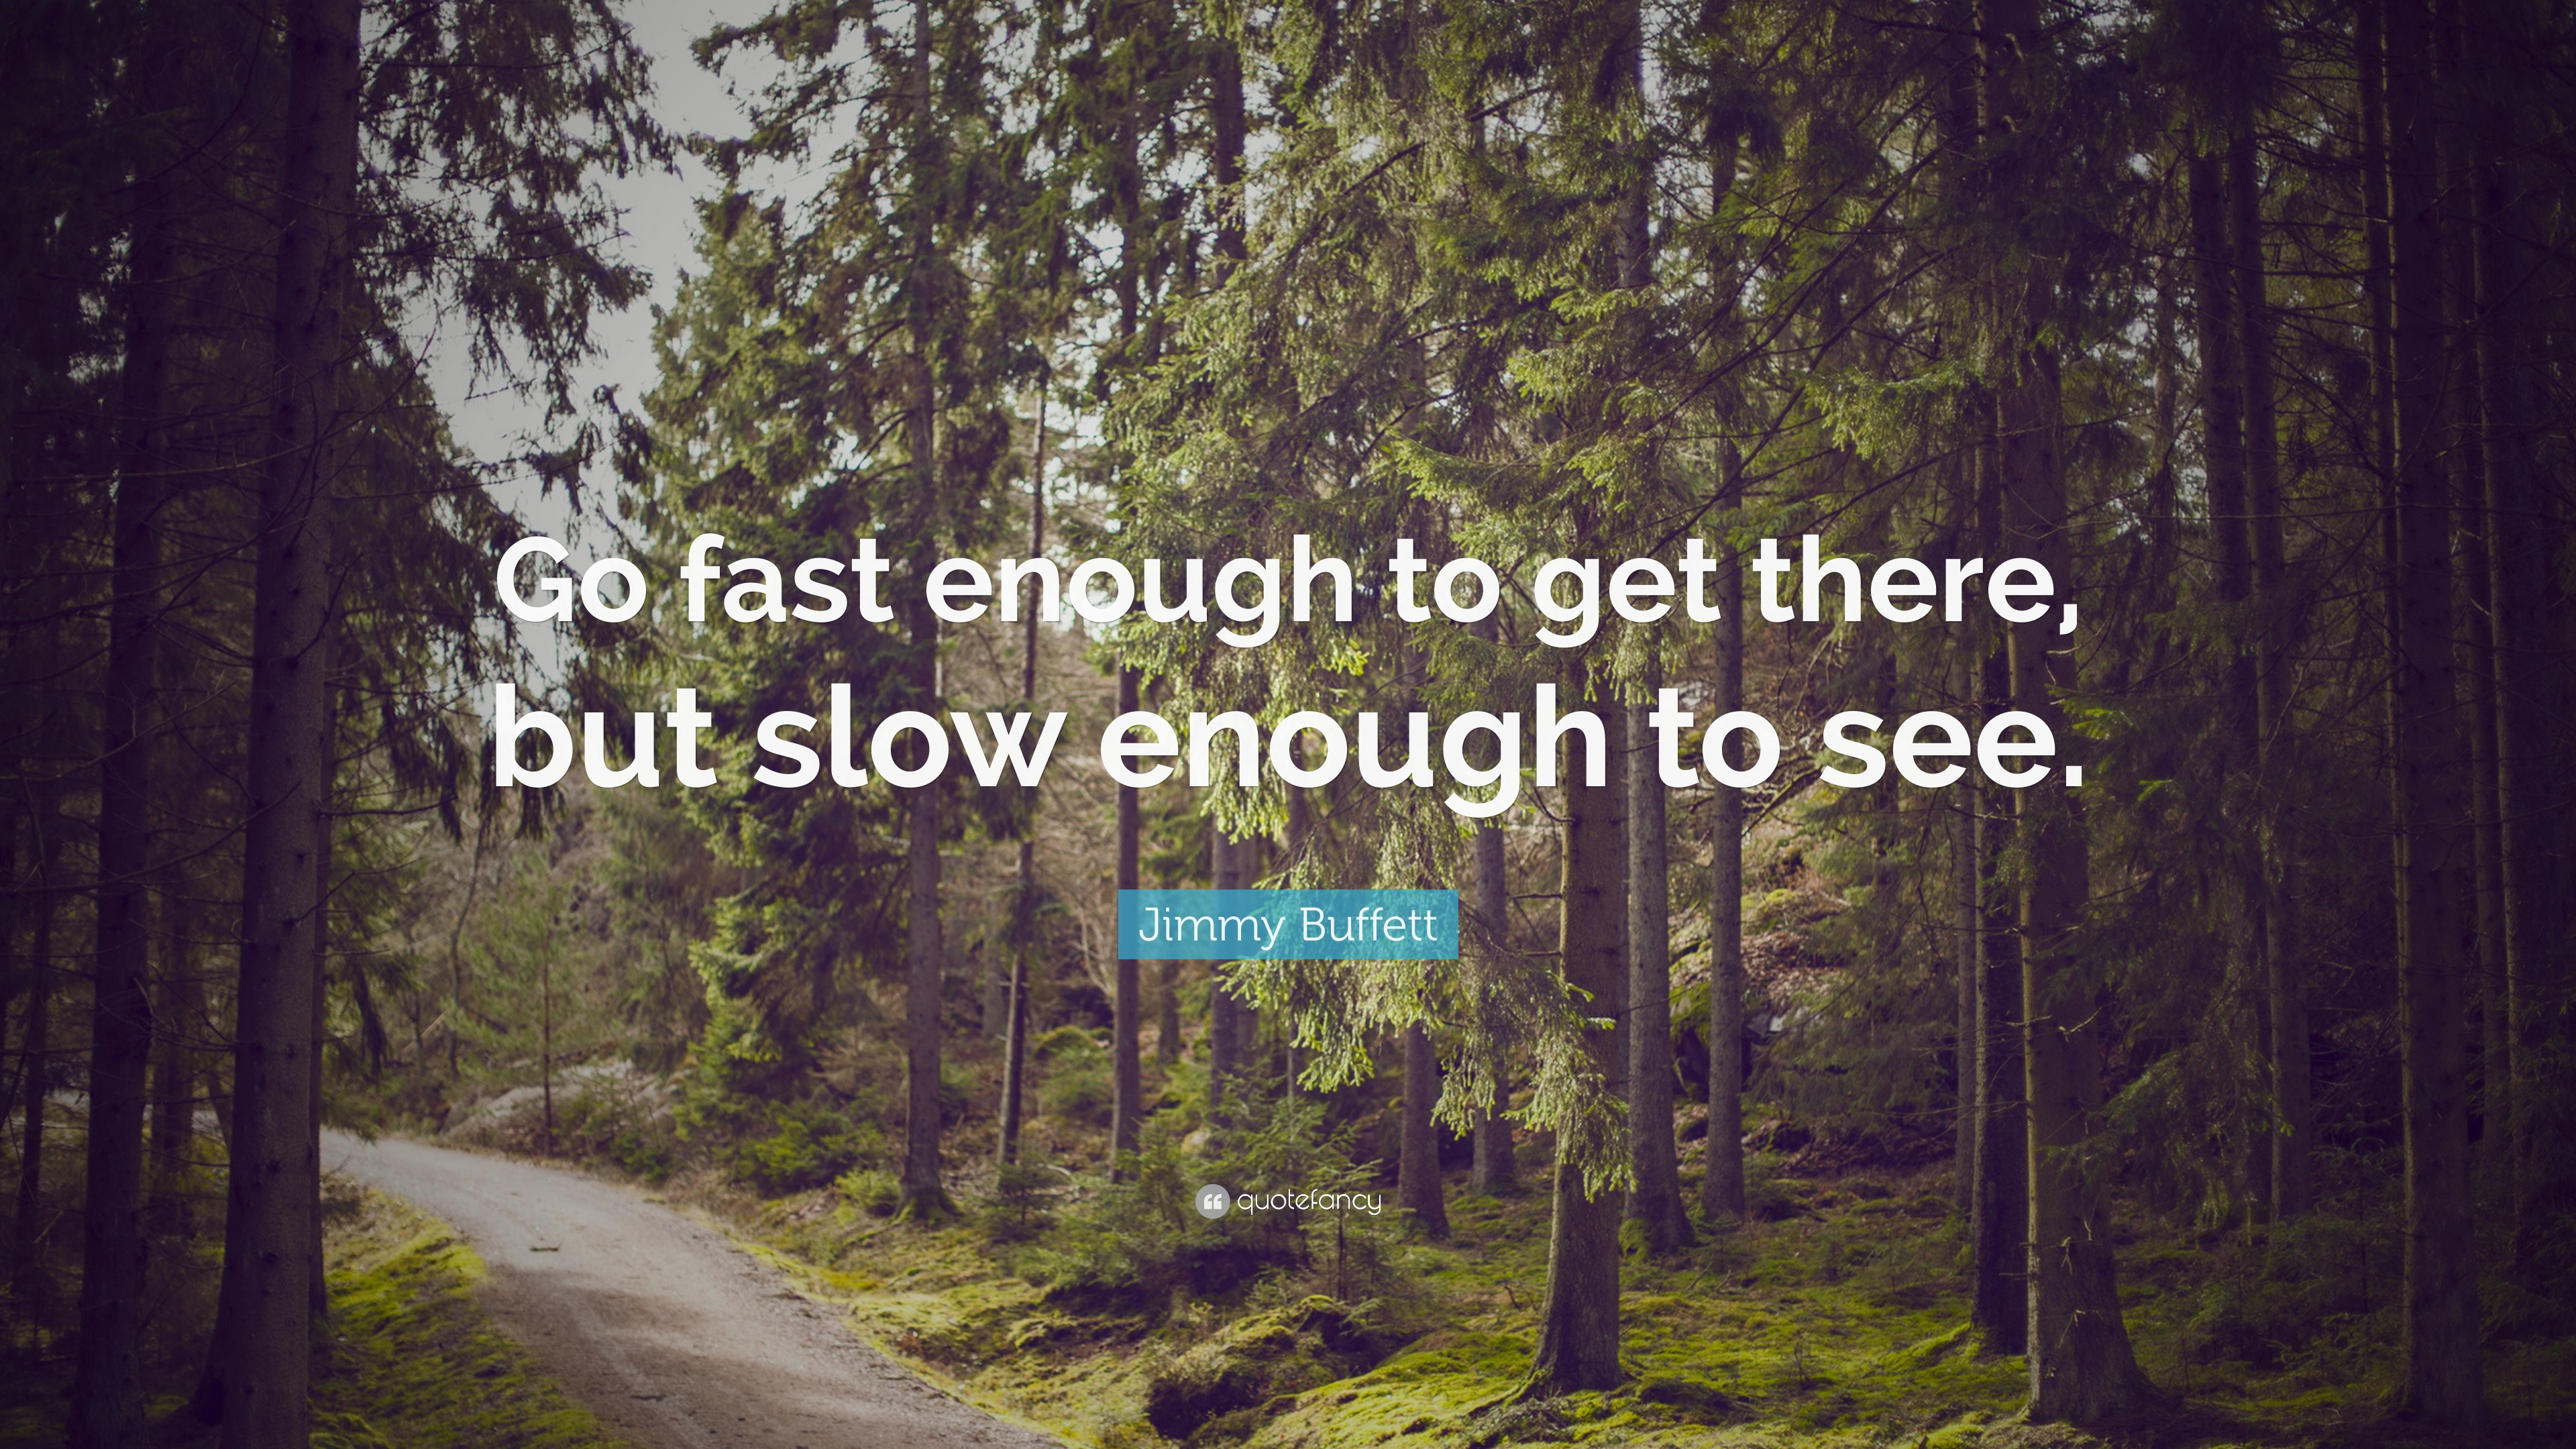 Image result for Go fast enough to get there, but slow enough to see